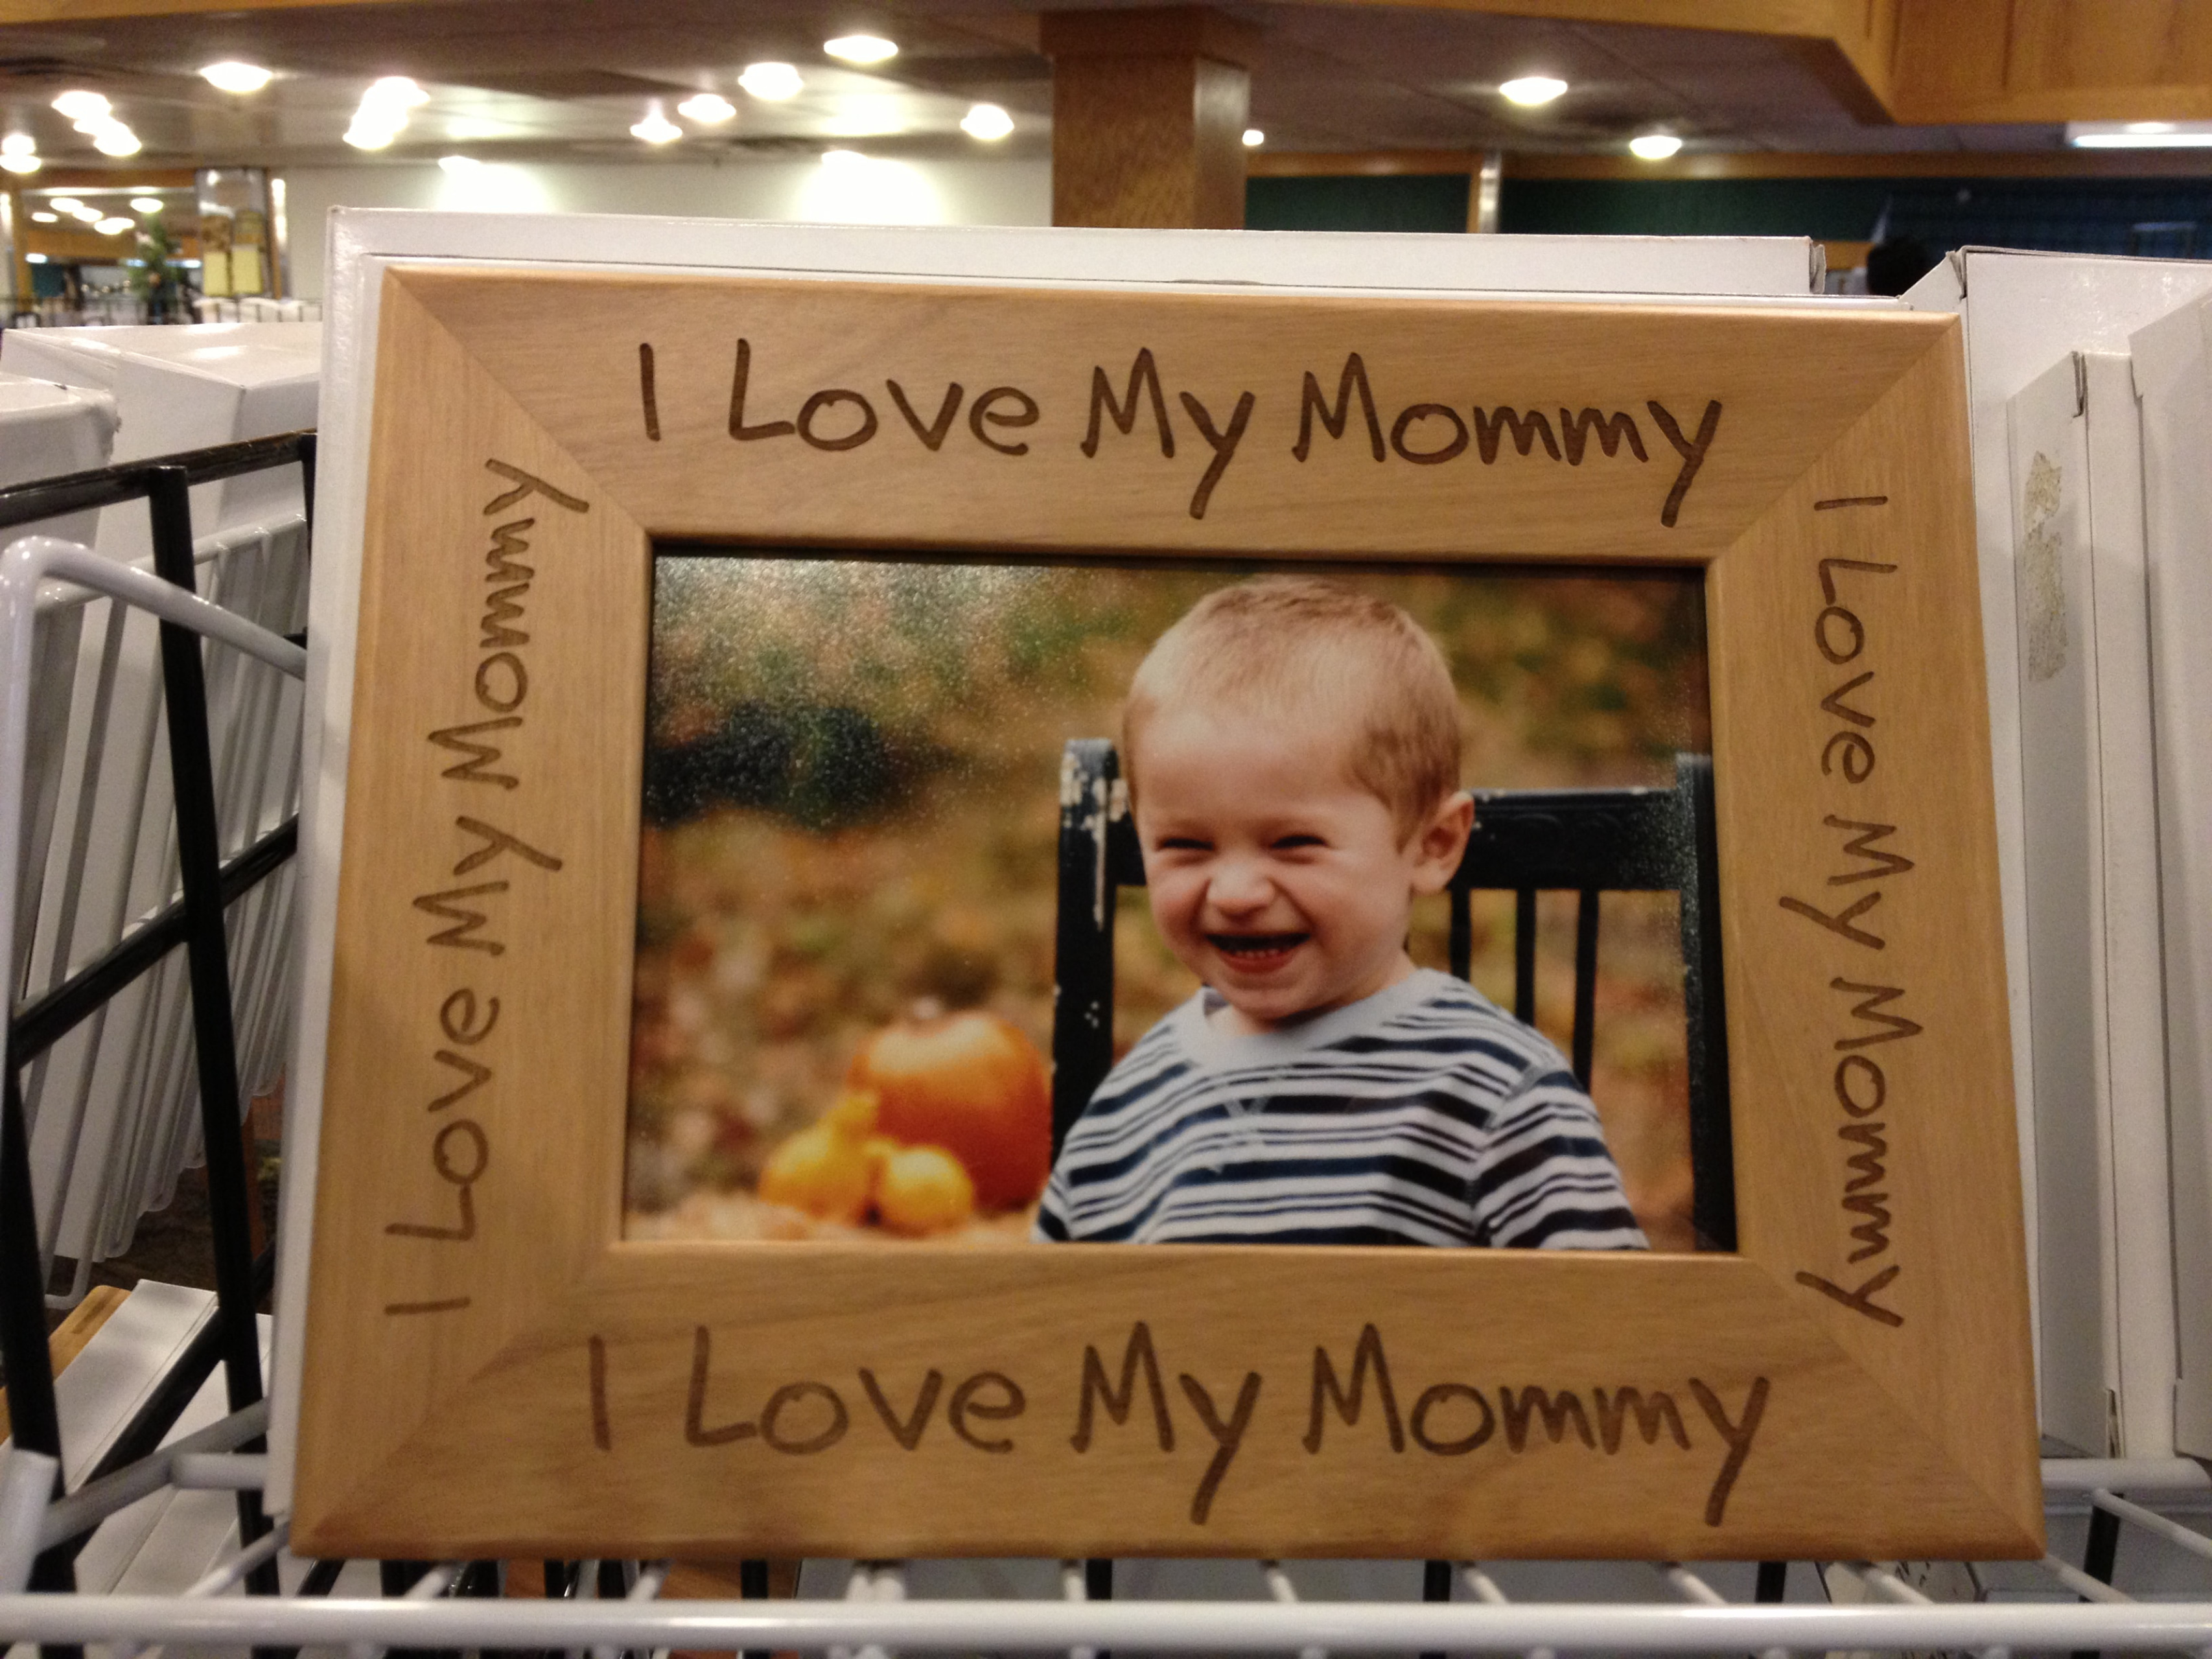 I Love My Mommy Frame Available In 4 X 6 Or 5 X 7 Sizes